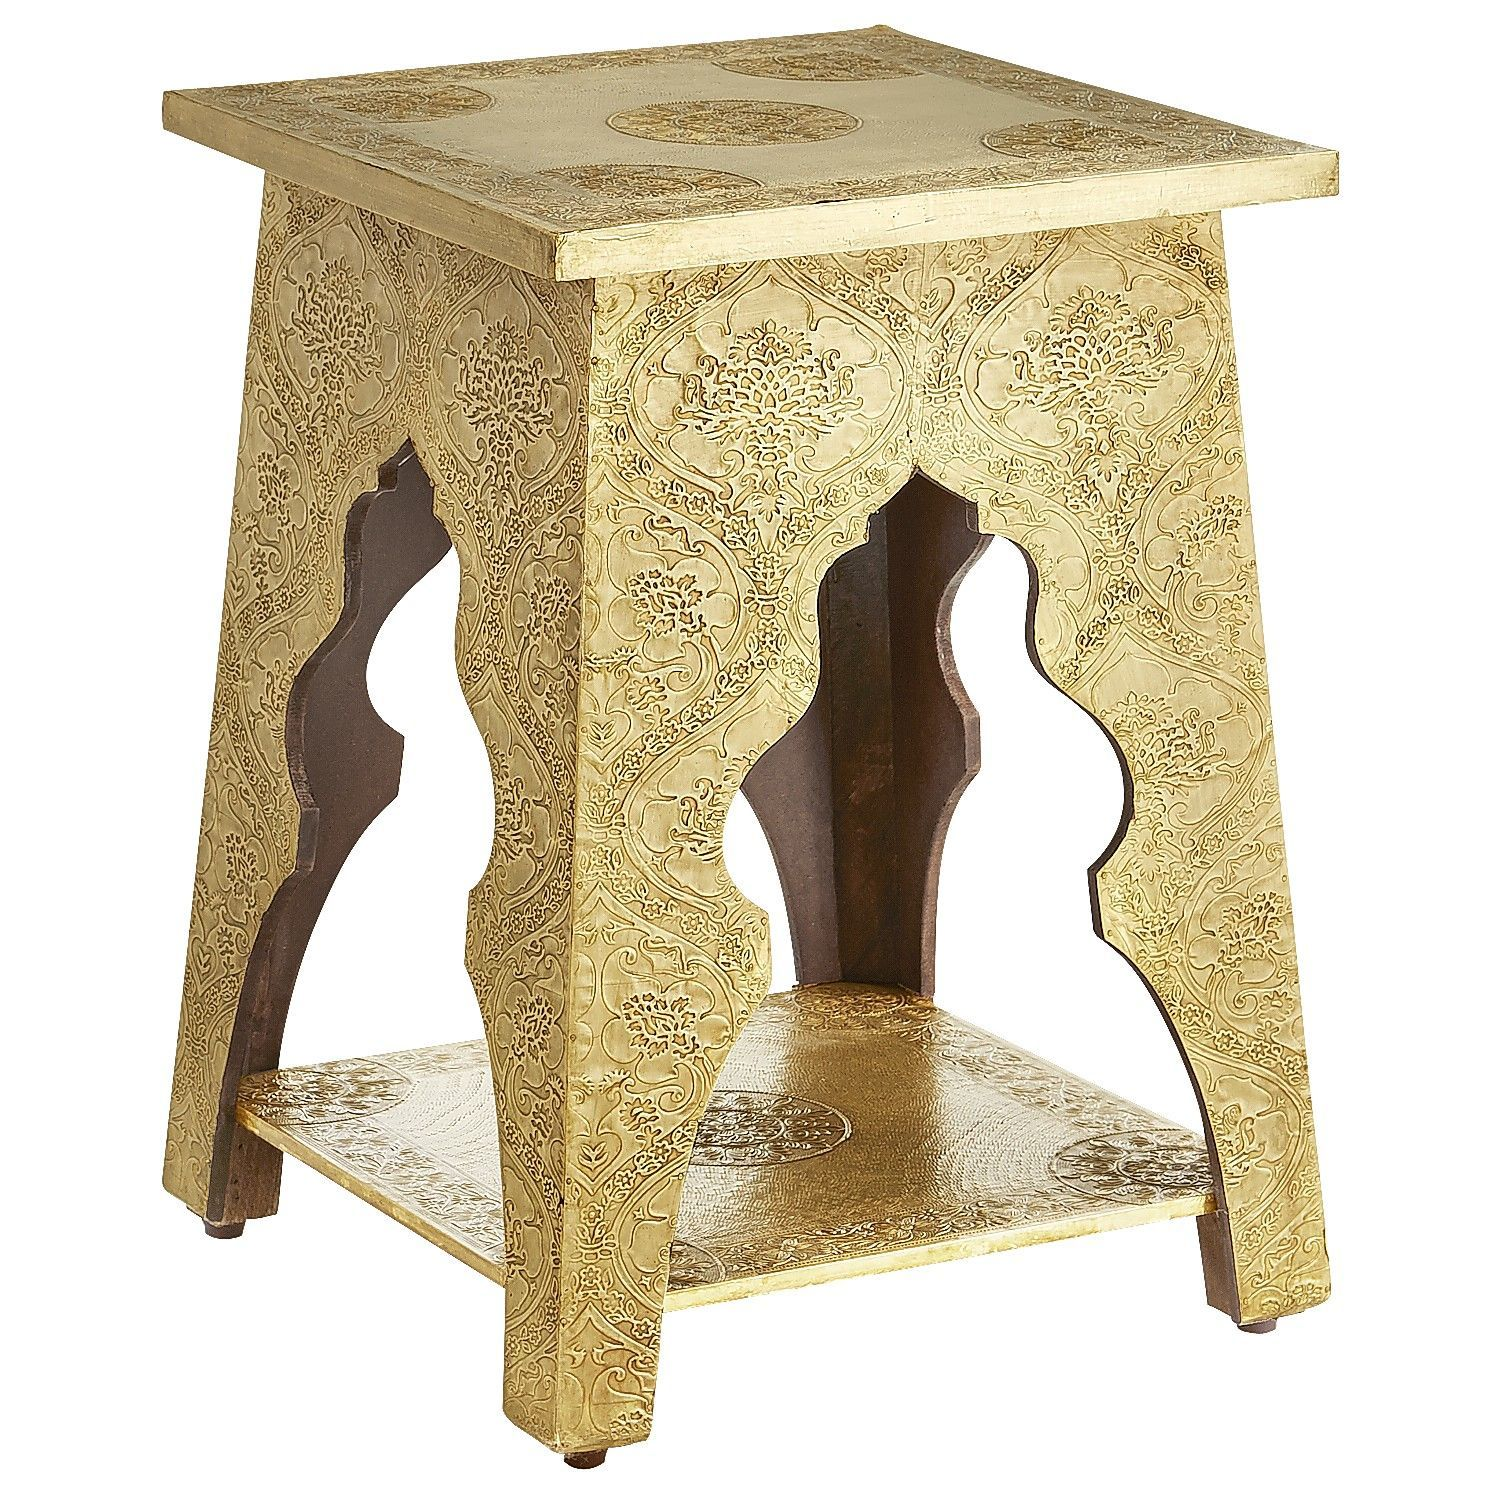 Marrakesh Accent Table Brass Pier 1 Imports Decor Gold